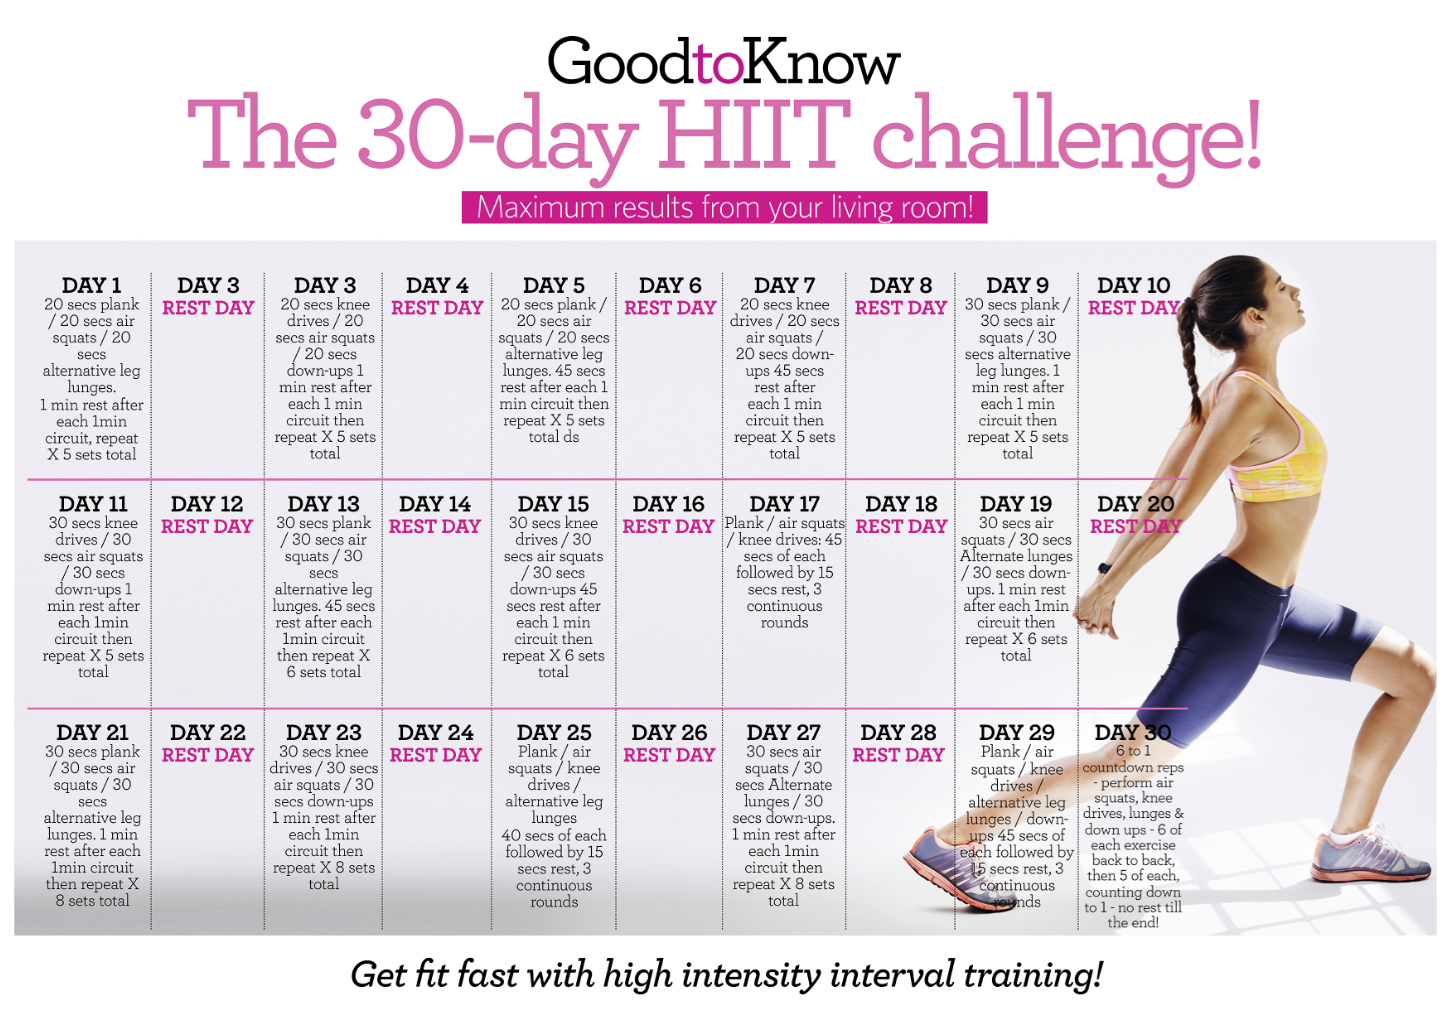 Hiit workouts easy interval training at home goodtoknow